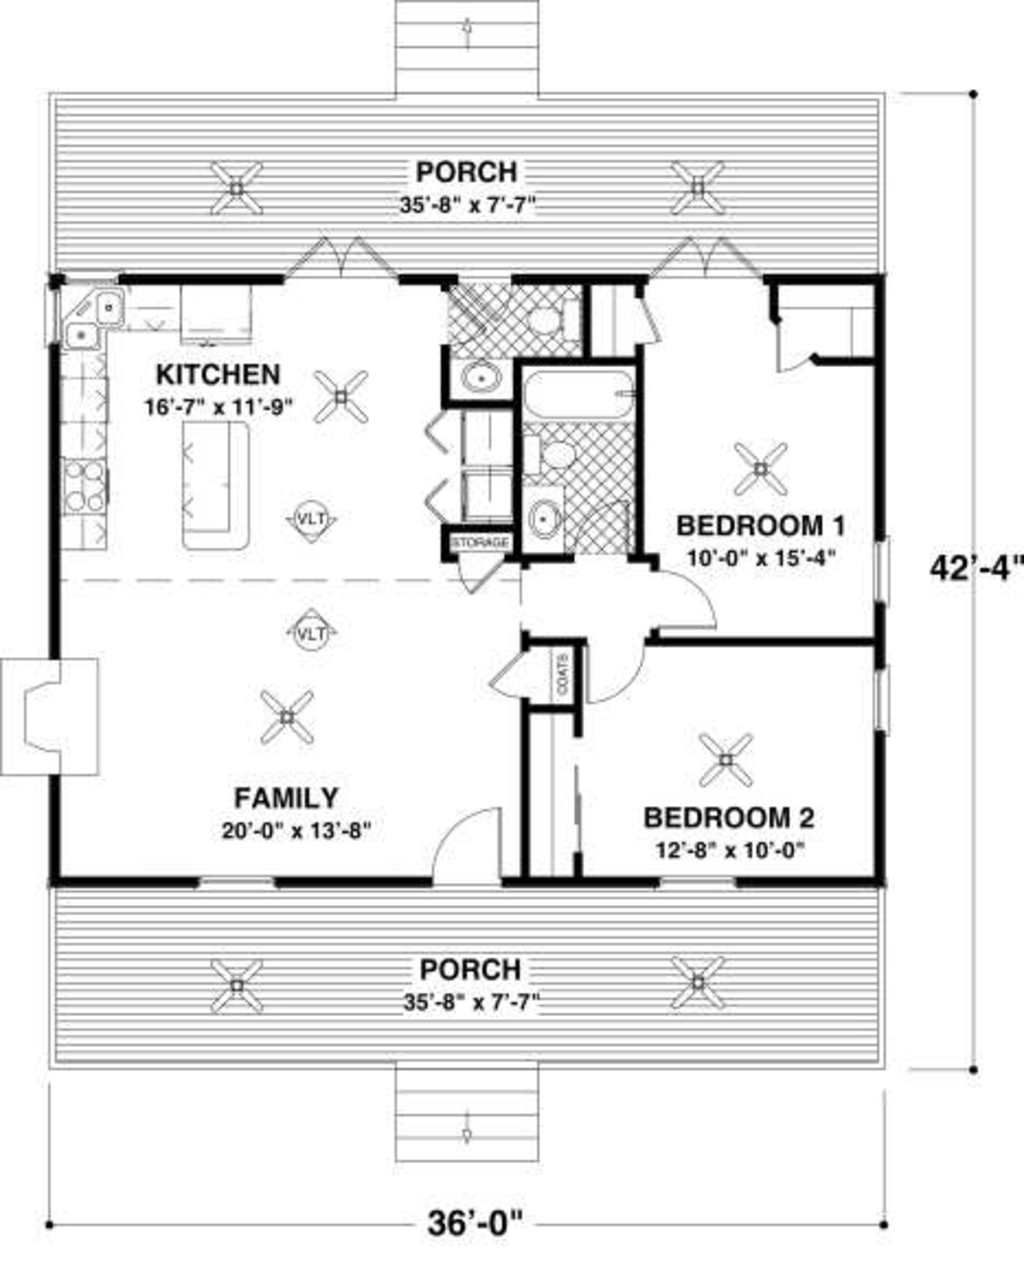 Guest House Floor Plans 2 Bedroom Small House Floor Plans Tiny House Plans Cottage Style House Plans